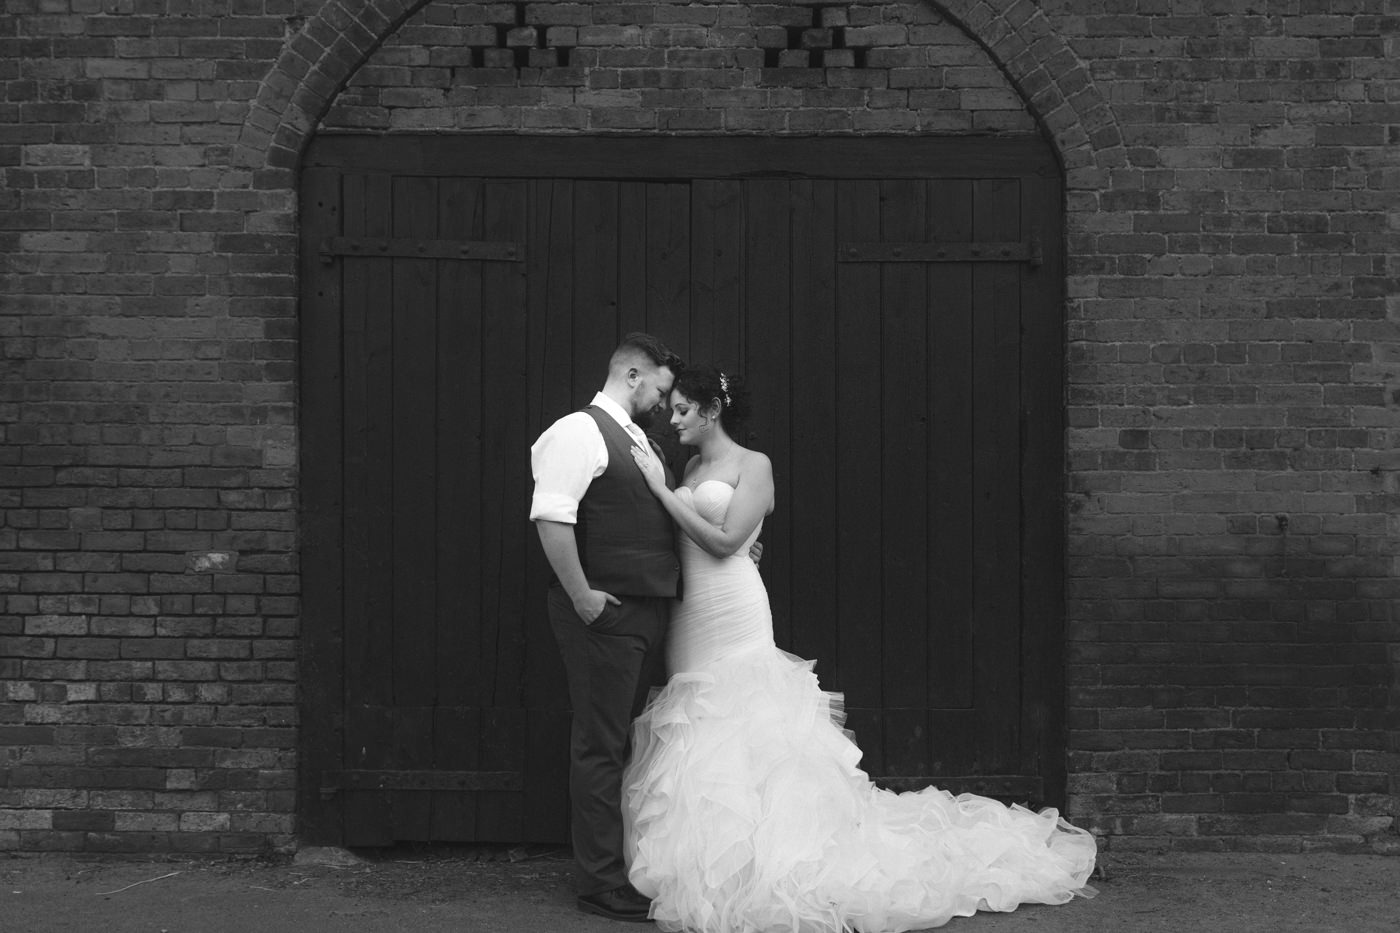 Bride and Groom Together Forever Portrait Photography